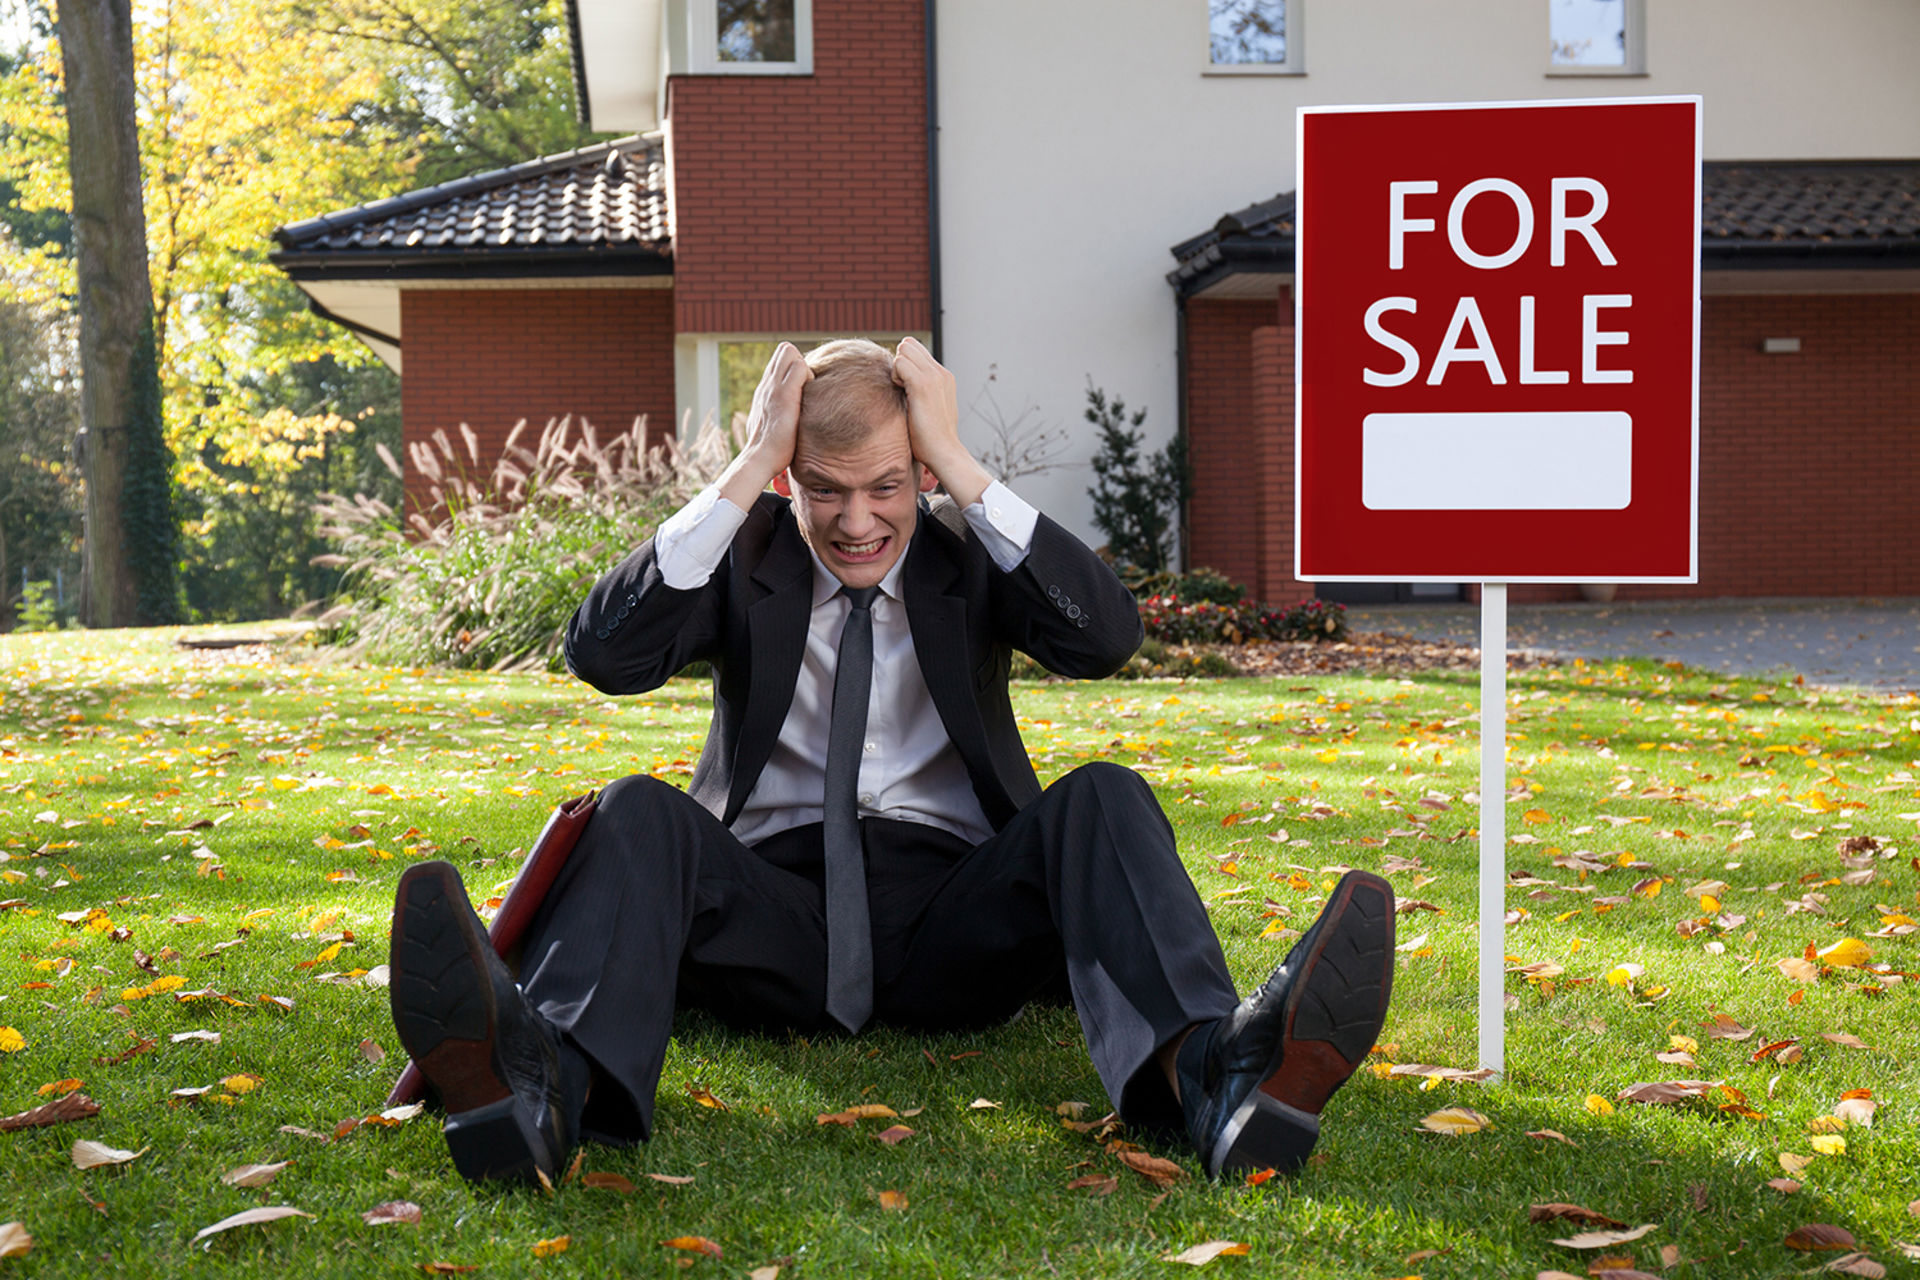 Selling Your Home? Here's 3 Reasons Why You Won't Want to Handle the Sale Yourself – The Richard Hopkinson Team